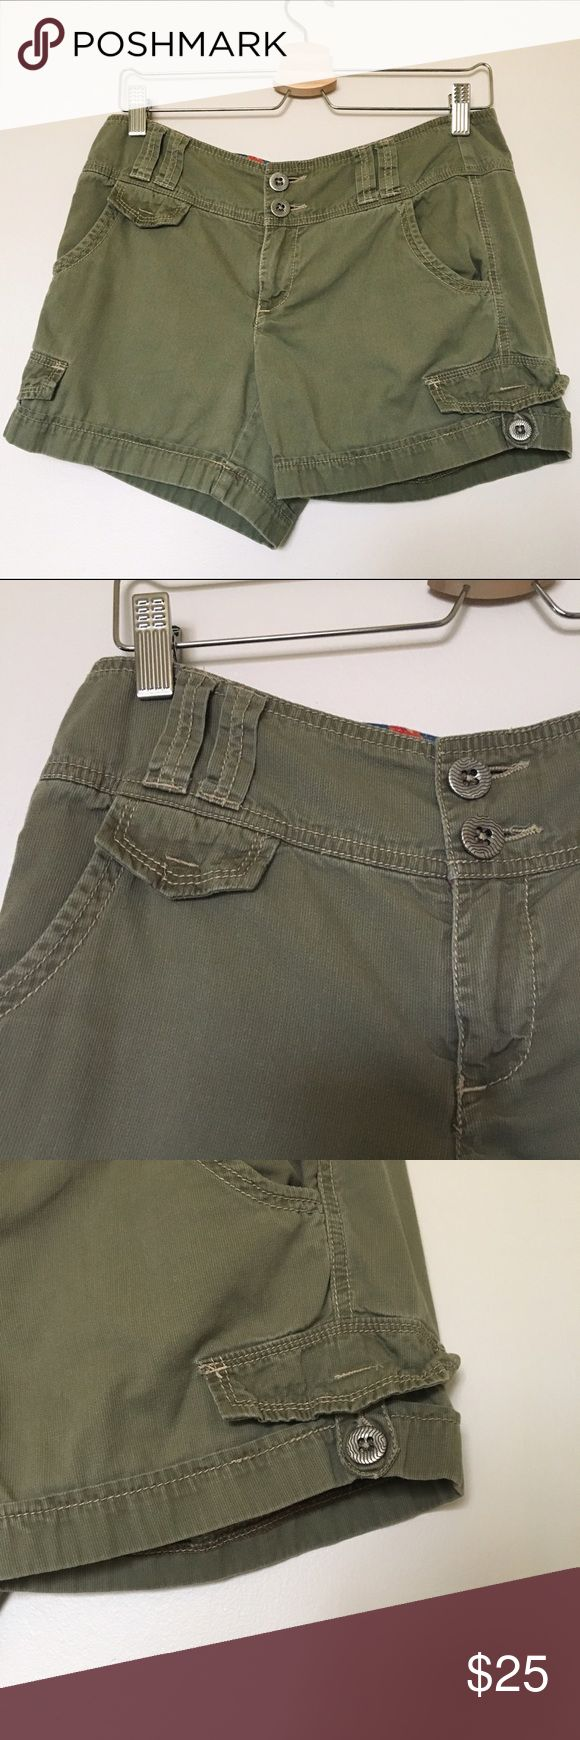 """Anthropologie Daughters of Liberation Green Shorts Unique, Cute, Functional Anthropologie Daughters of Liberation Army Green Shorts. Size 6. 100% Cotton. Excellent Condition. The buttons are so groovy!! Love them! Plus, the blue floral interior pattern is awesome. Machine wash cold with like colors. Waist W: 16"""" laying down. L: 12"""" Anthropologie Shorts"""